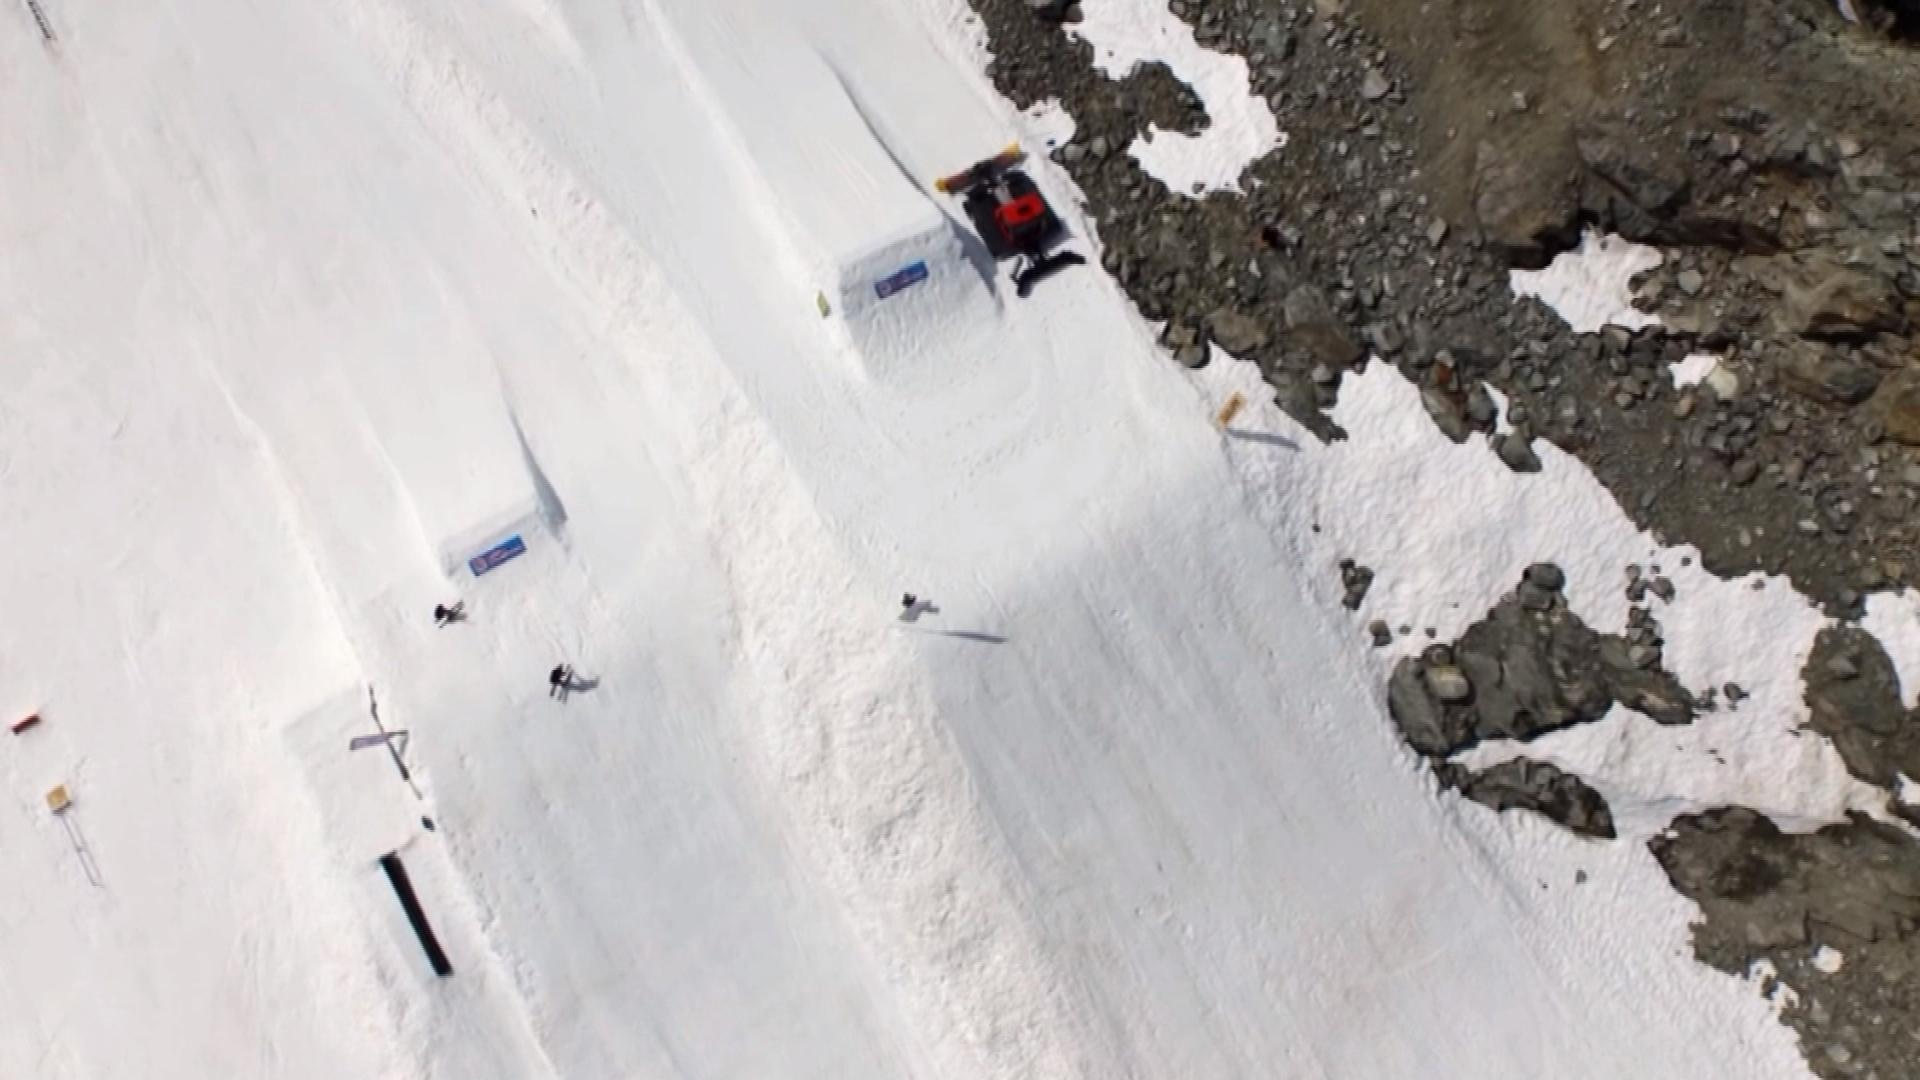 The view of a ski slope from a drone (credit: CBS)